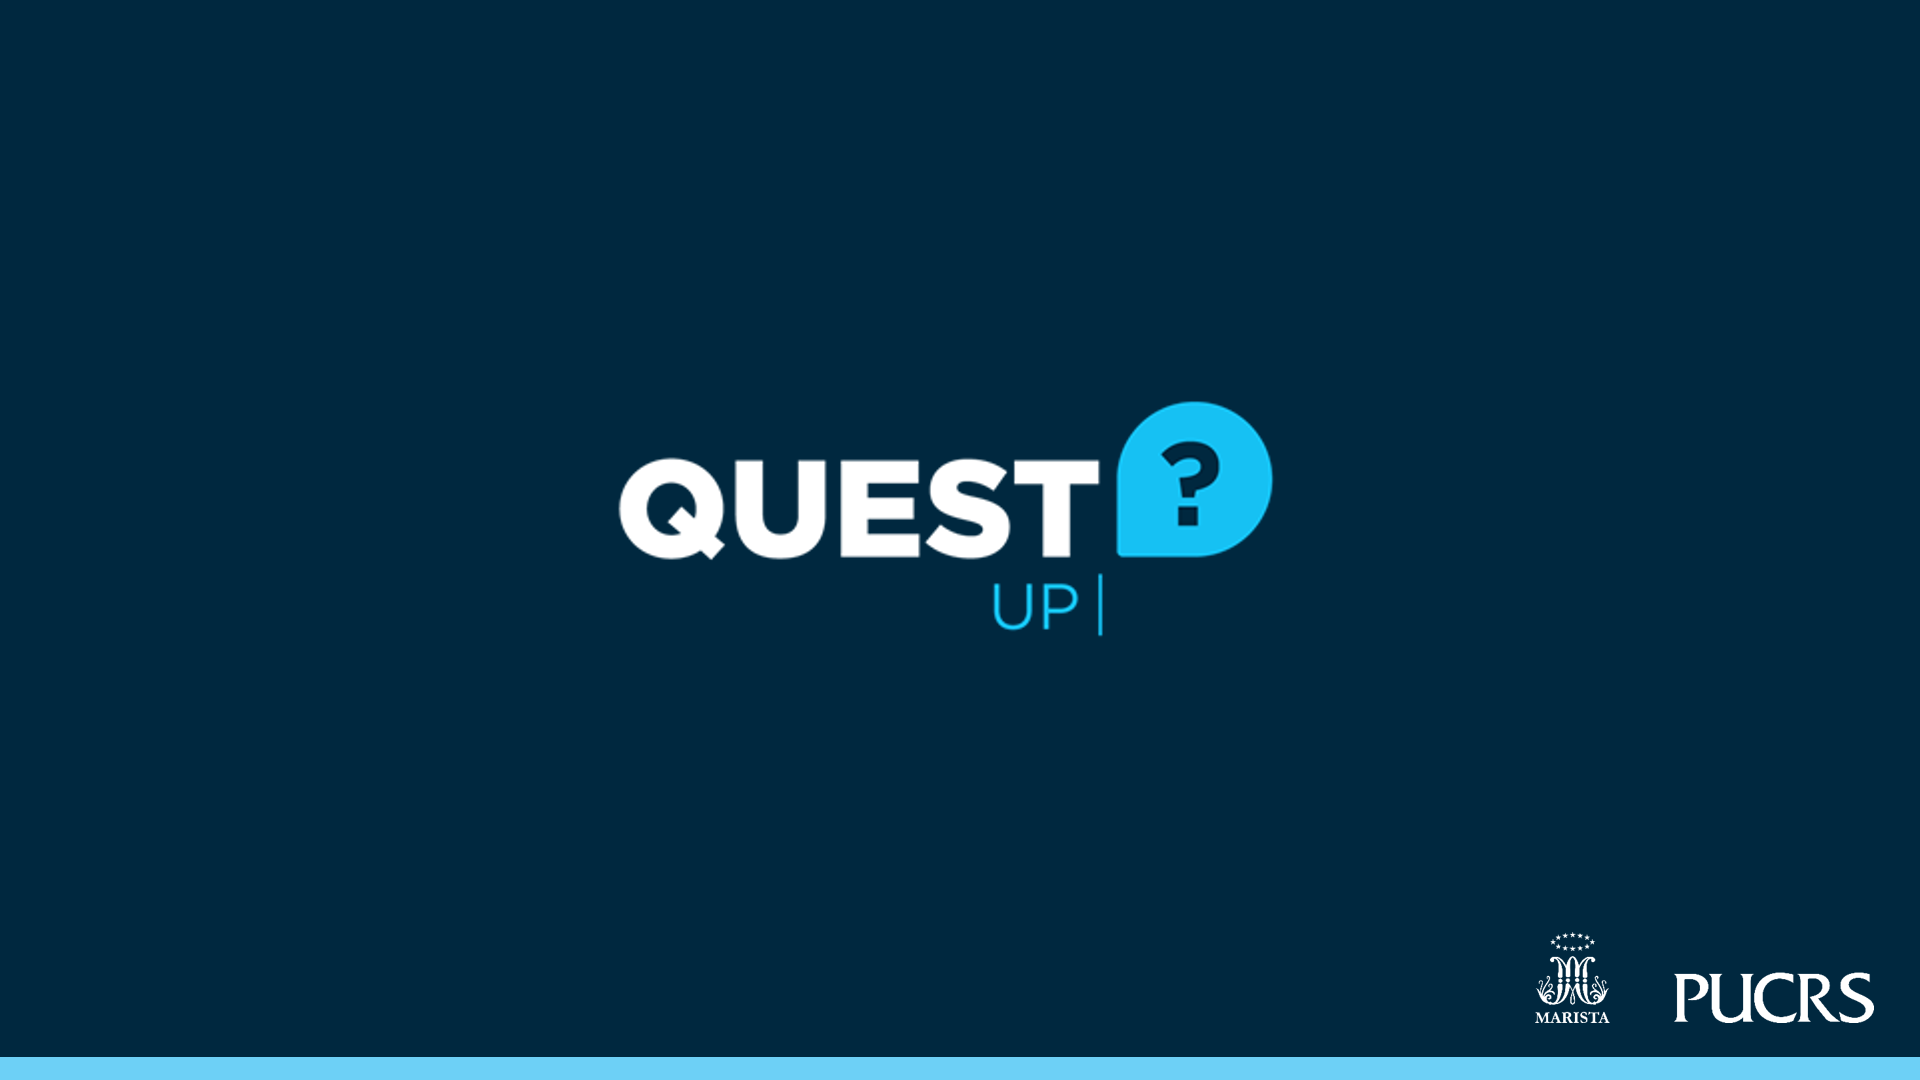 Quest UP